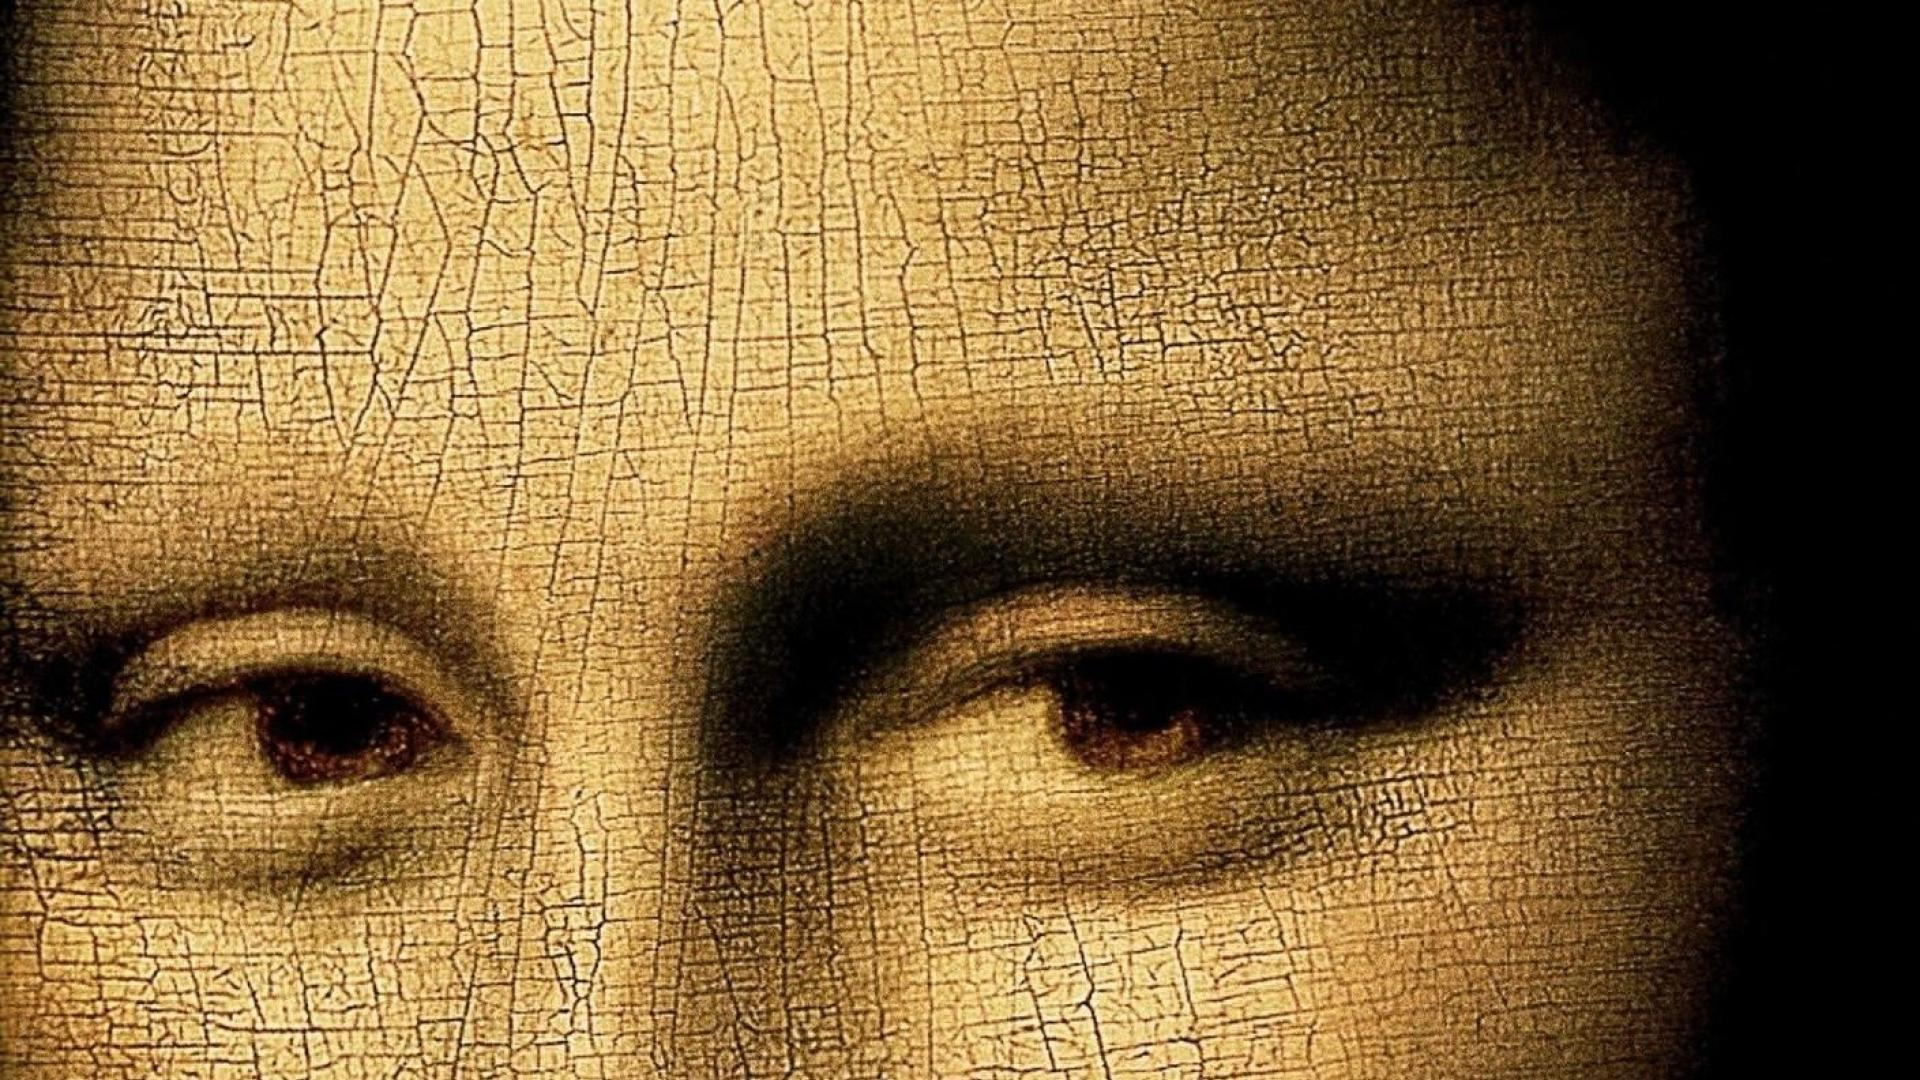 Mona Lisa HD Wallpaper 1920x1080